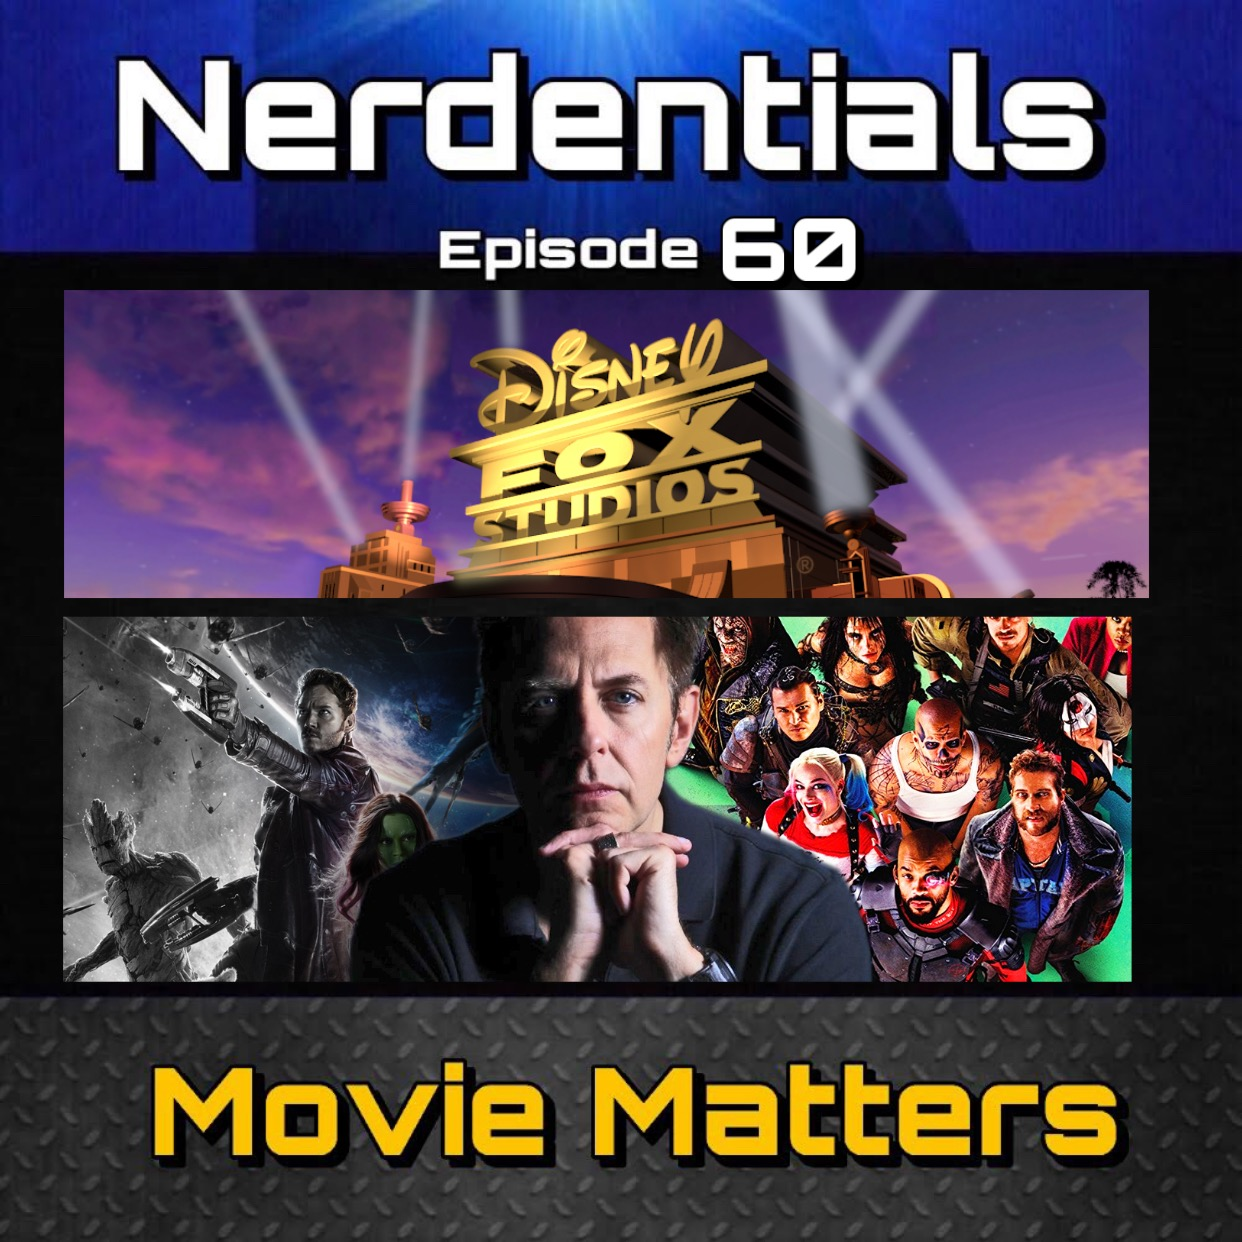 - Welcome to Nerdentials! Your weekly dose of the nerdy essentials. Covering Film, TV, Video Games and Comics.It's been a while Nerds! We know. so after a short hiatus....we return in full force! This week your nerd hosts Joe, Matt, Nick and Lynn cover some Movie Matters.First we discuss our excitement for James Gun coming back to the Guardians of the Galaxy 3 project and still finishing his work with a fresh take on DC's Suicide Squad.Then we talk Disney and Fox finally official...and what we hope to see in the coming years for the MCU.Then things get a little heated when we talk casting roles for these big MCU films.Strap in Nerds....it's a LONG one.